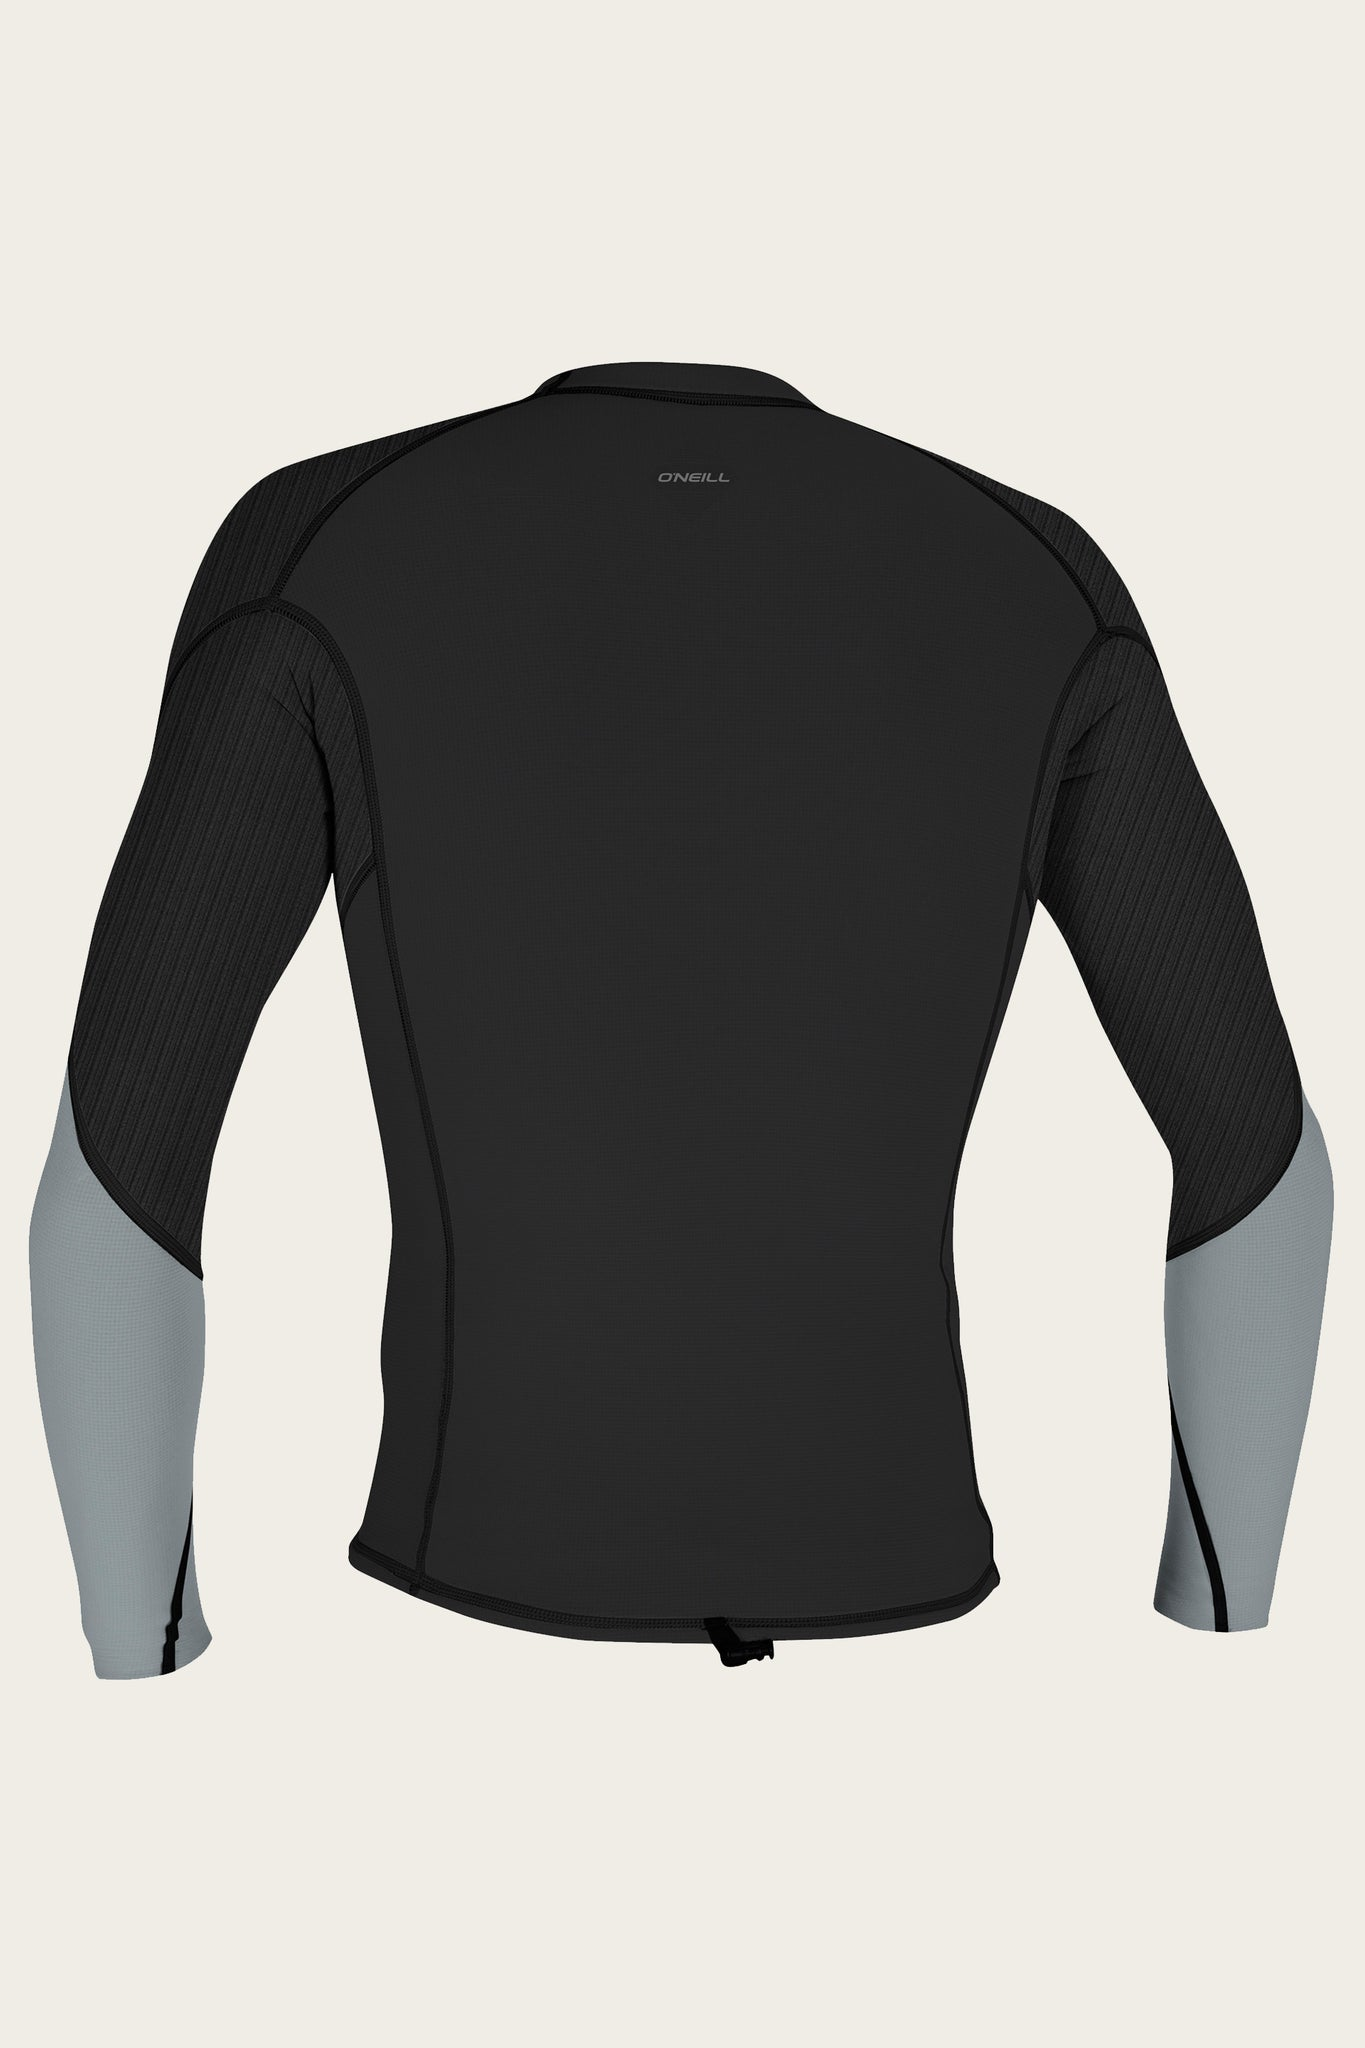 Hyperfreak 1.5Mm Long Sleeve Top - Mniteoil/Coolgry | O'Neill